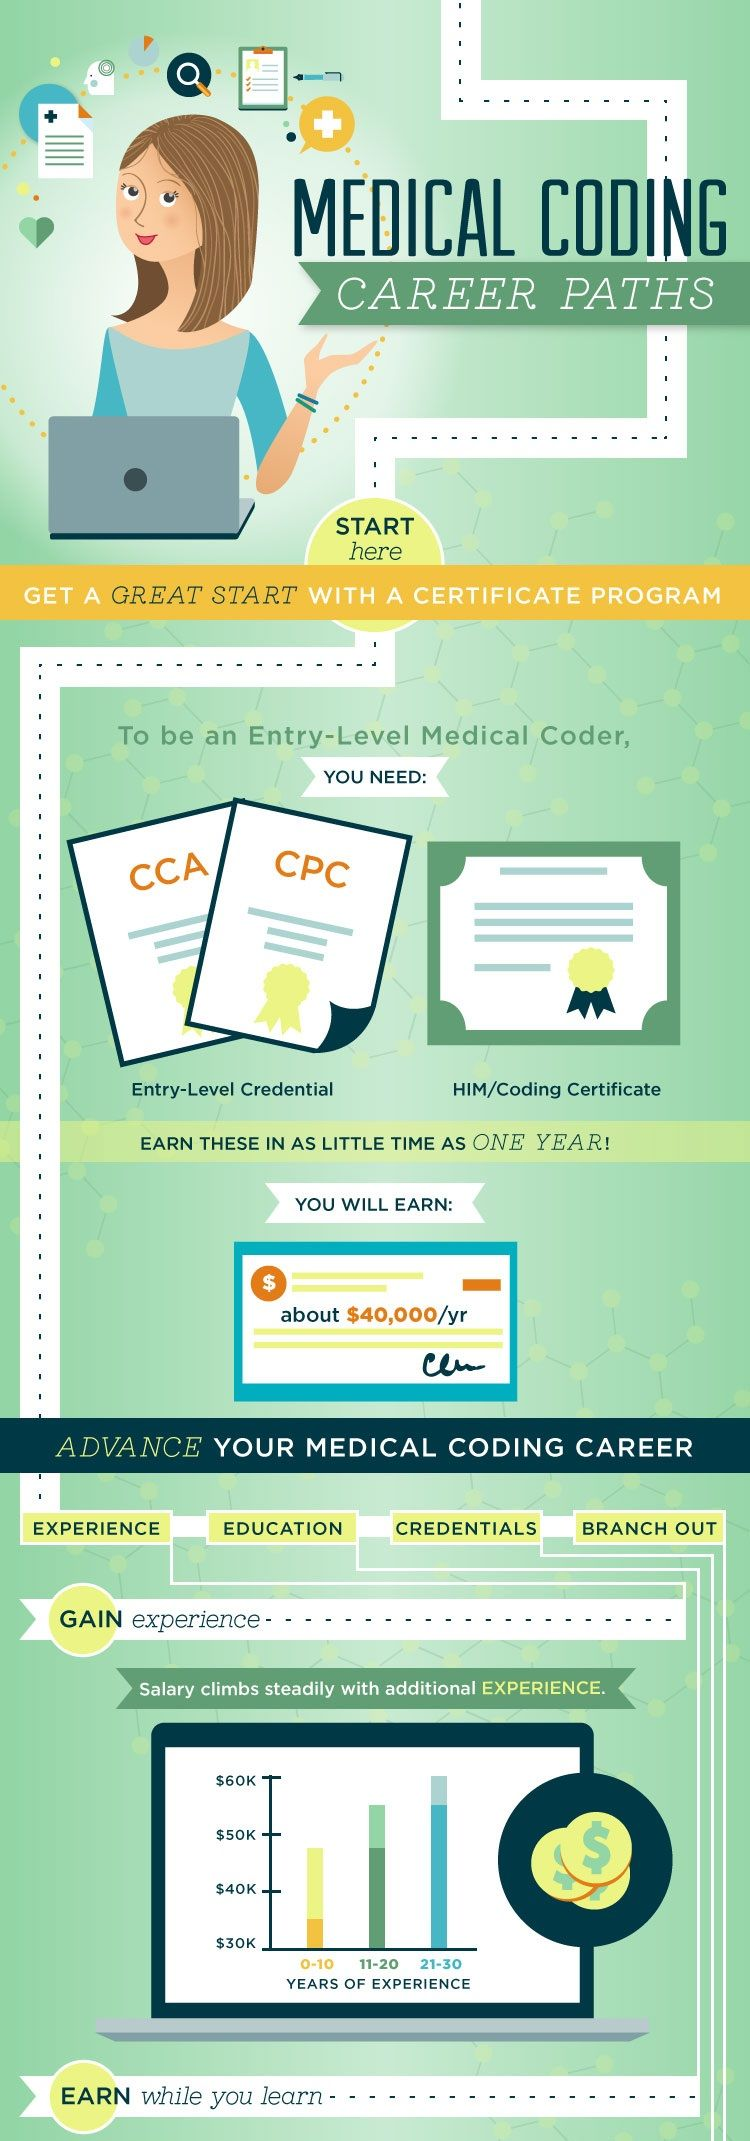 Medical Billing & Coding Careers  With a certificate in